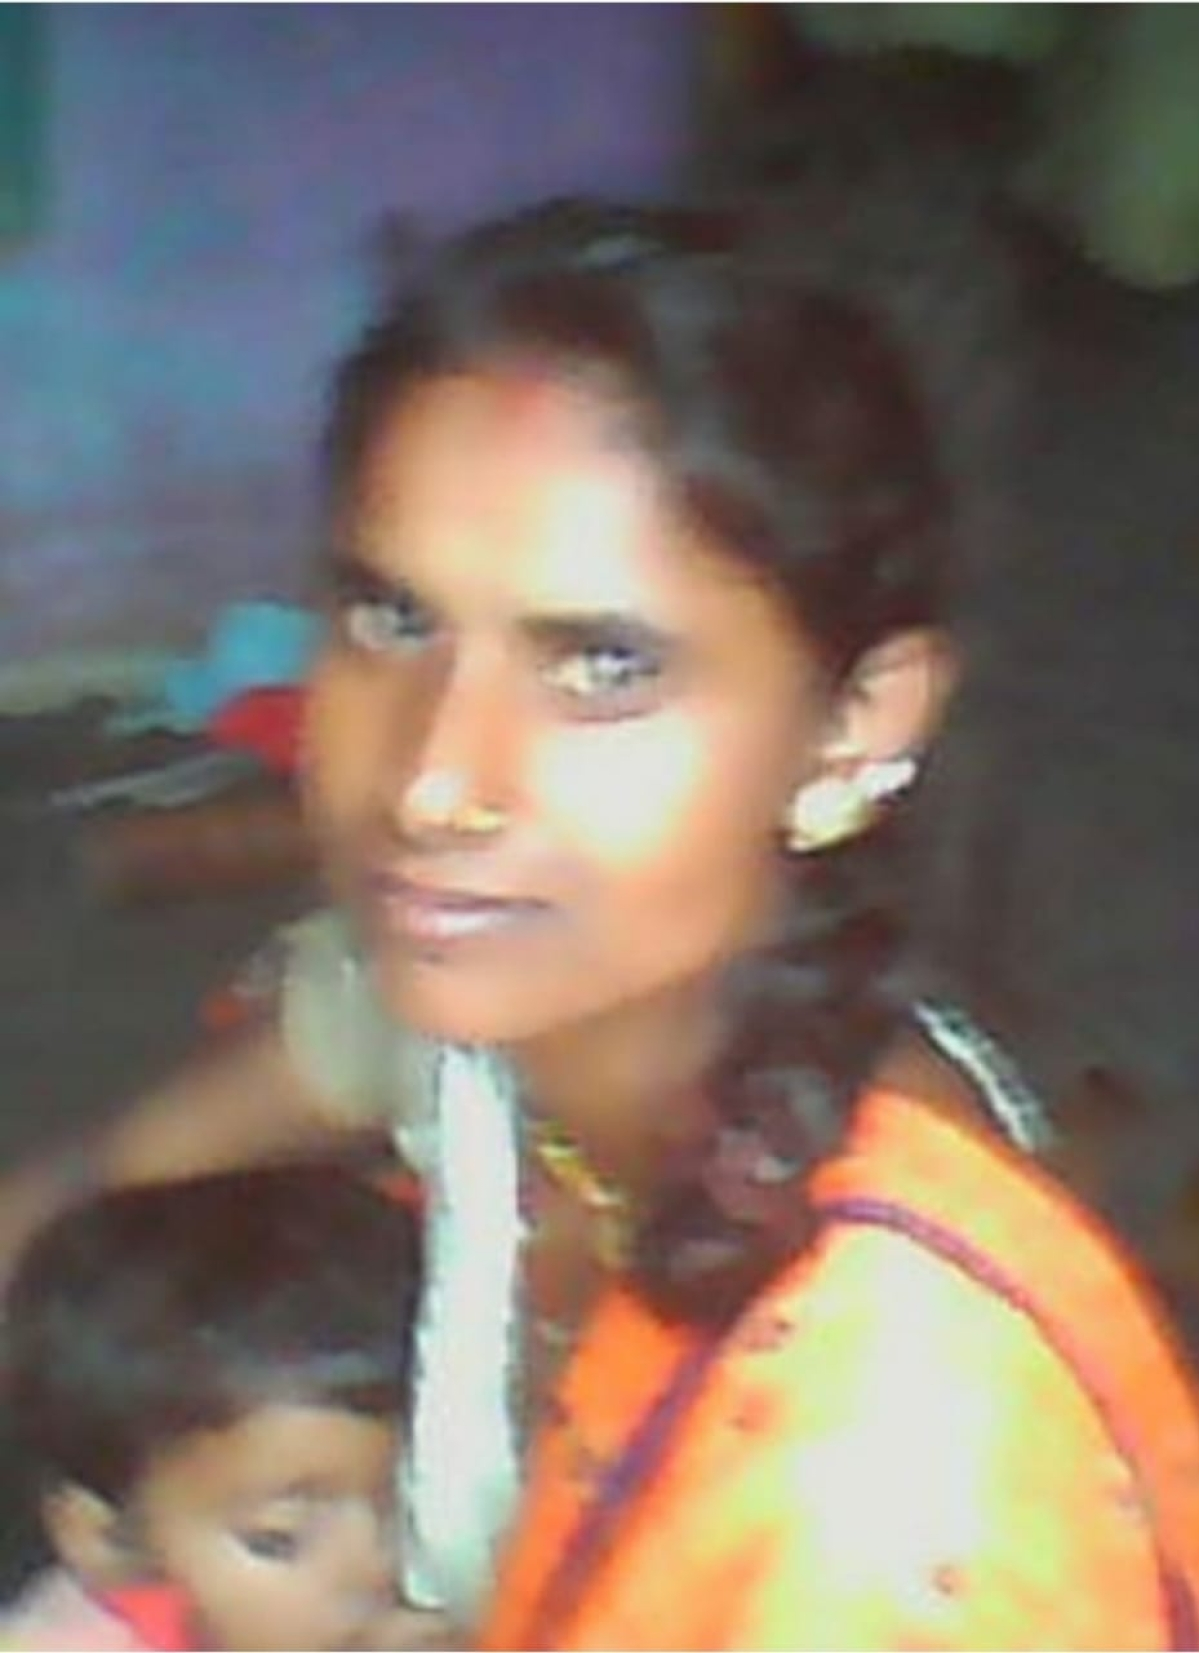 Savitri Baghel, who was allegedly killed by her husband and in-laws